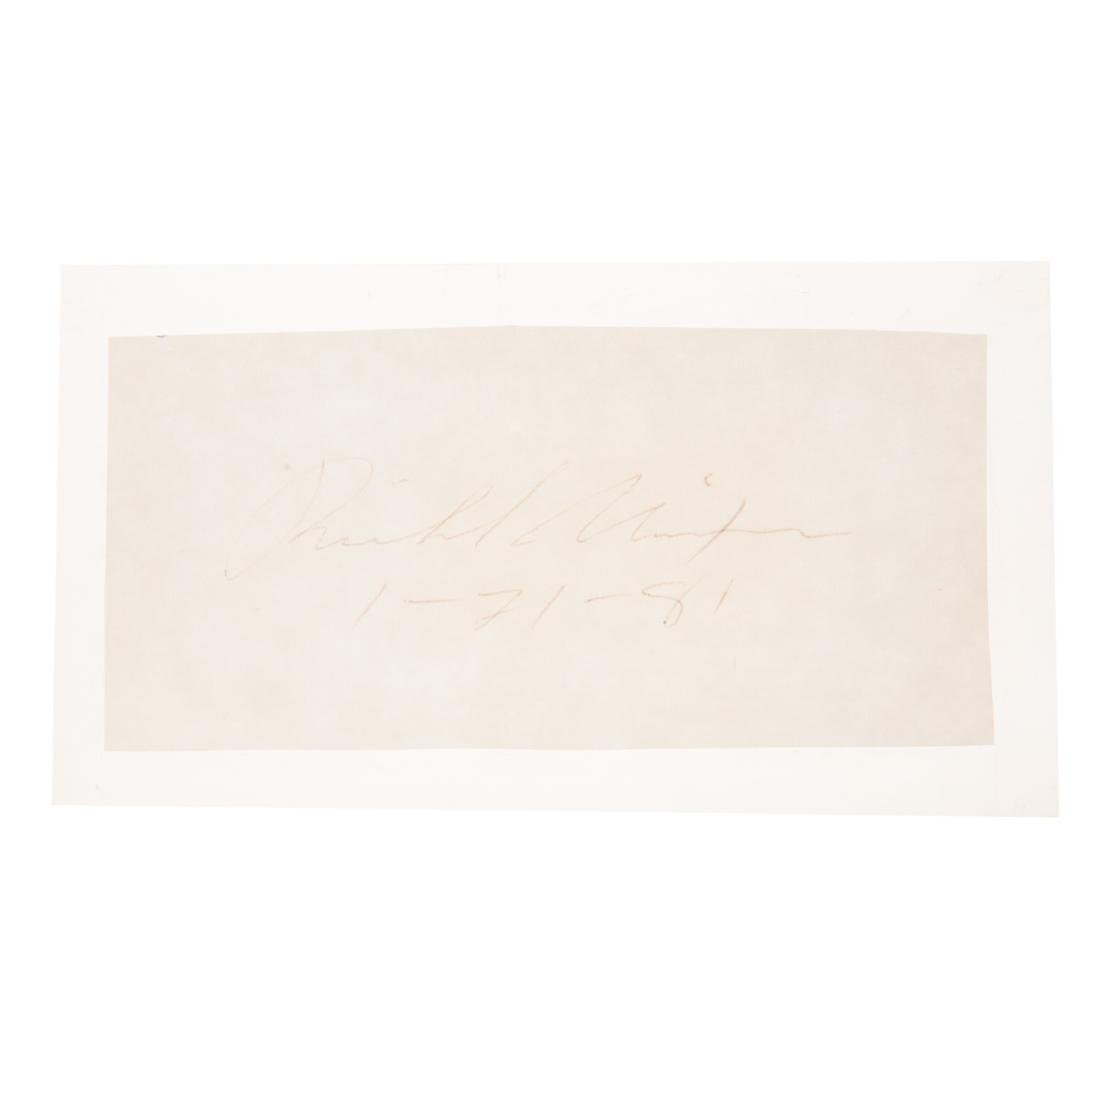 Eight former United States presidents signatures - 8